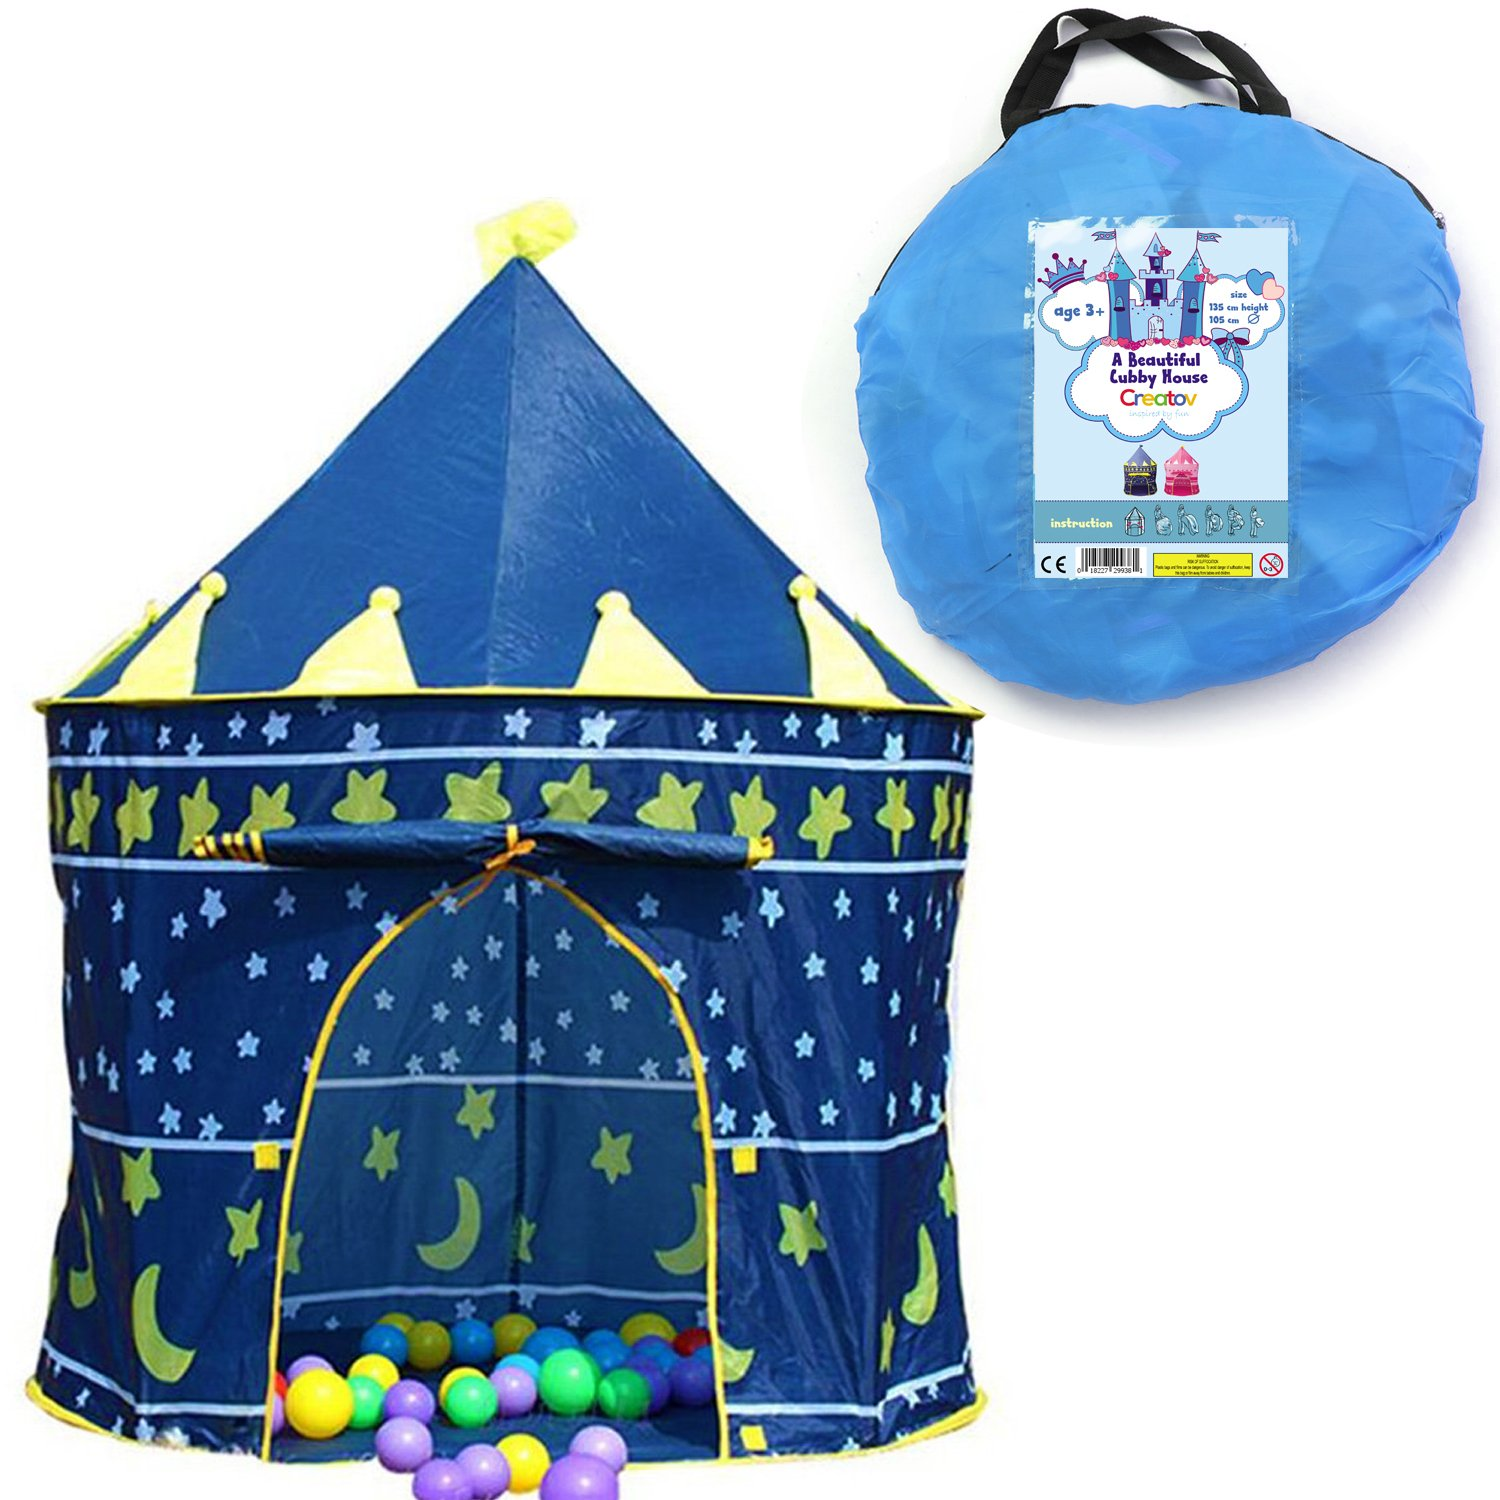 Amazon.com Kids Play Tent Indoor Outdoor - for Boys Girls Baby Toddler Playhouse Prince House Castle Blue Foldable Tents with Carry Case by Creatov Toys u0026 ...  sc 1 st  Amazon.com & Amazon.com: Kids Play Tent Indoor Outdoor - for Boys Girls Baby ...